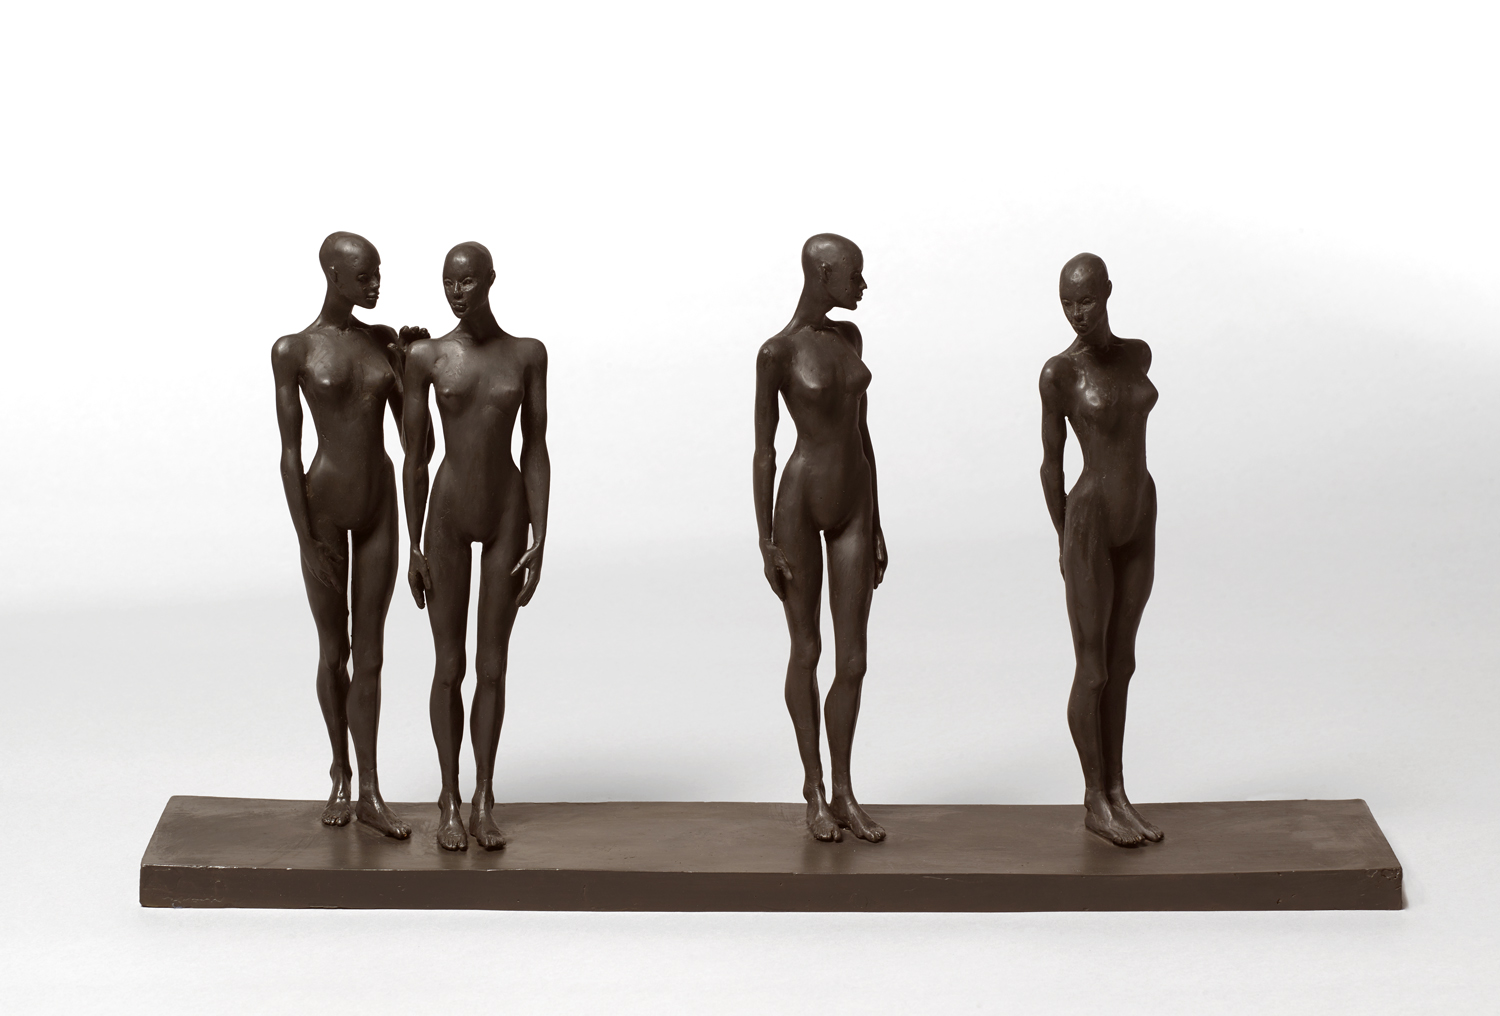 The Comment , 2019 bronze 11 1/2 x 21 3/4 x 4 inches; 29.2 x 55.2 x 10.2 centimeters